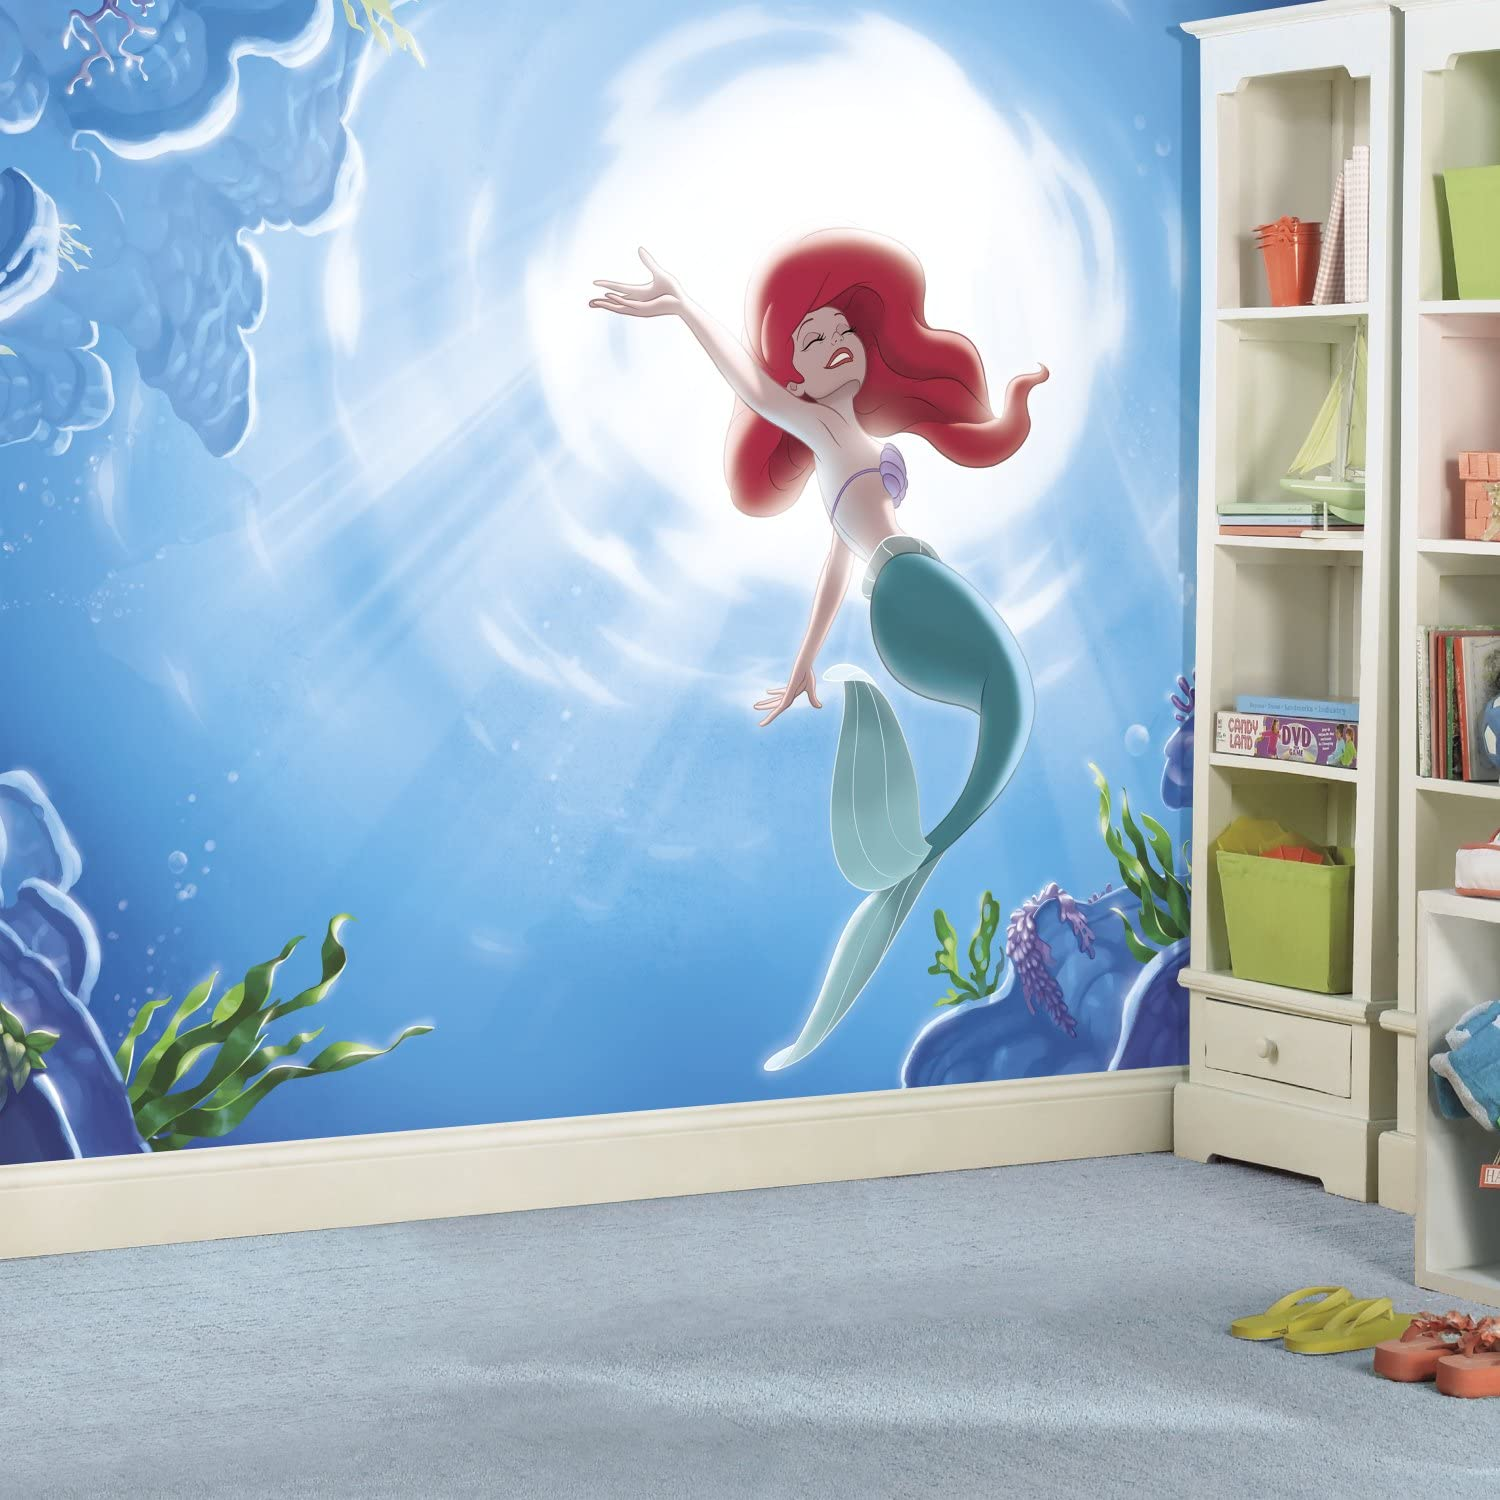 RoomMates Disney Princess The Little Mermaid 'Part Of Your World' Removable Wall Mural - 10.5 feet X 6 feet